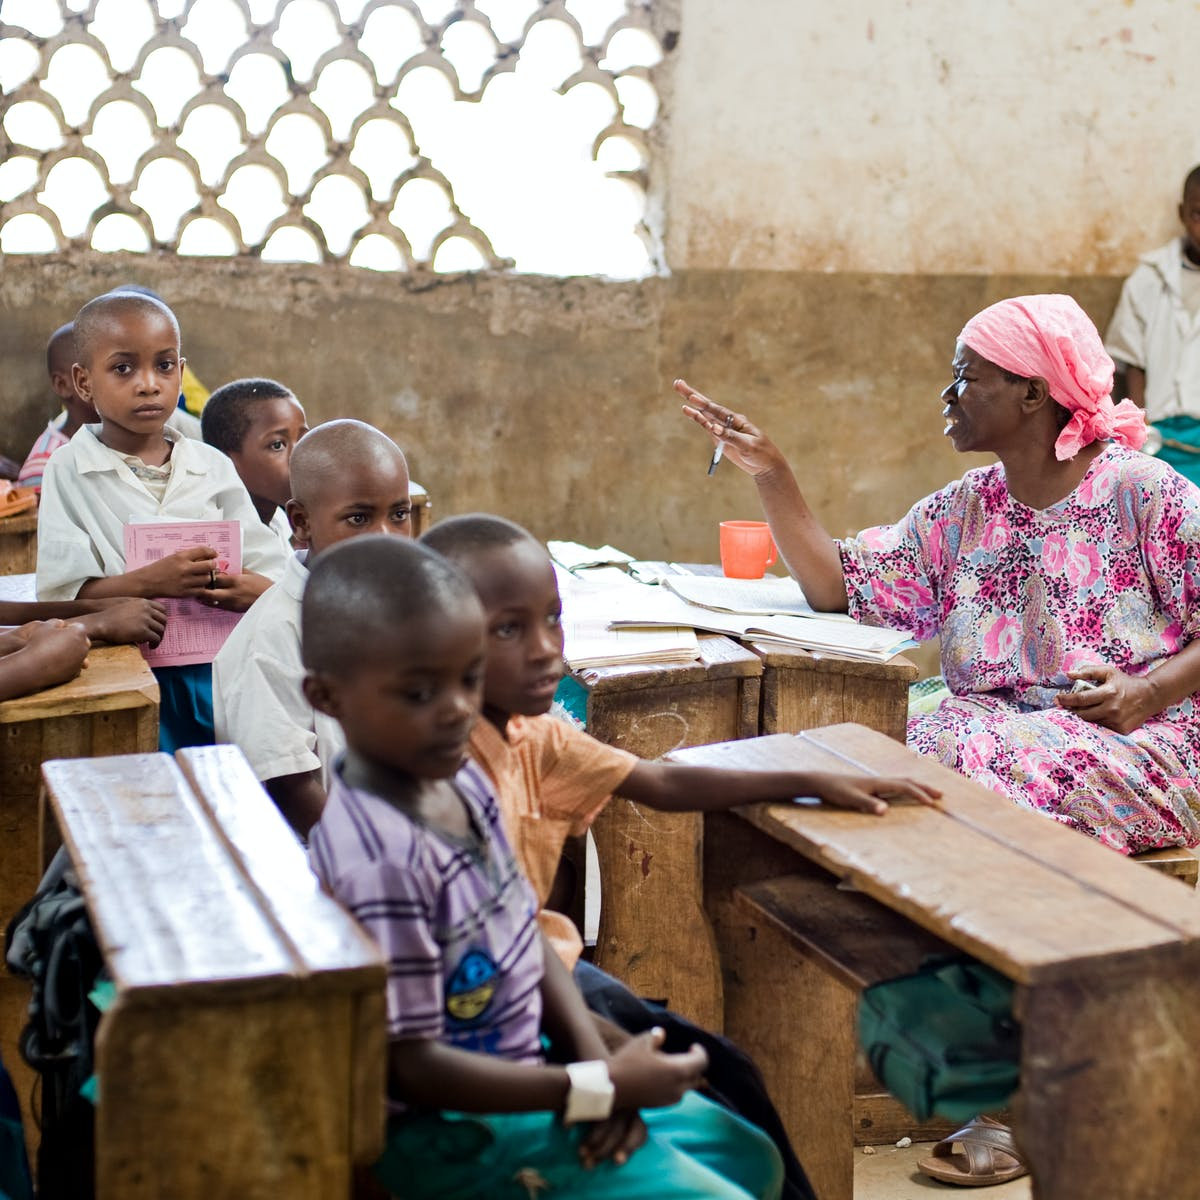 The Worst Victims Of Education >> Teachers Use Violence Against Children In Uganda We Set Out